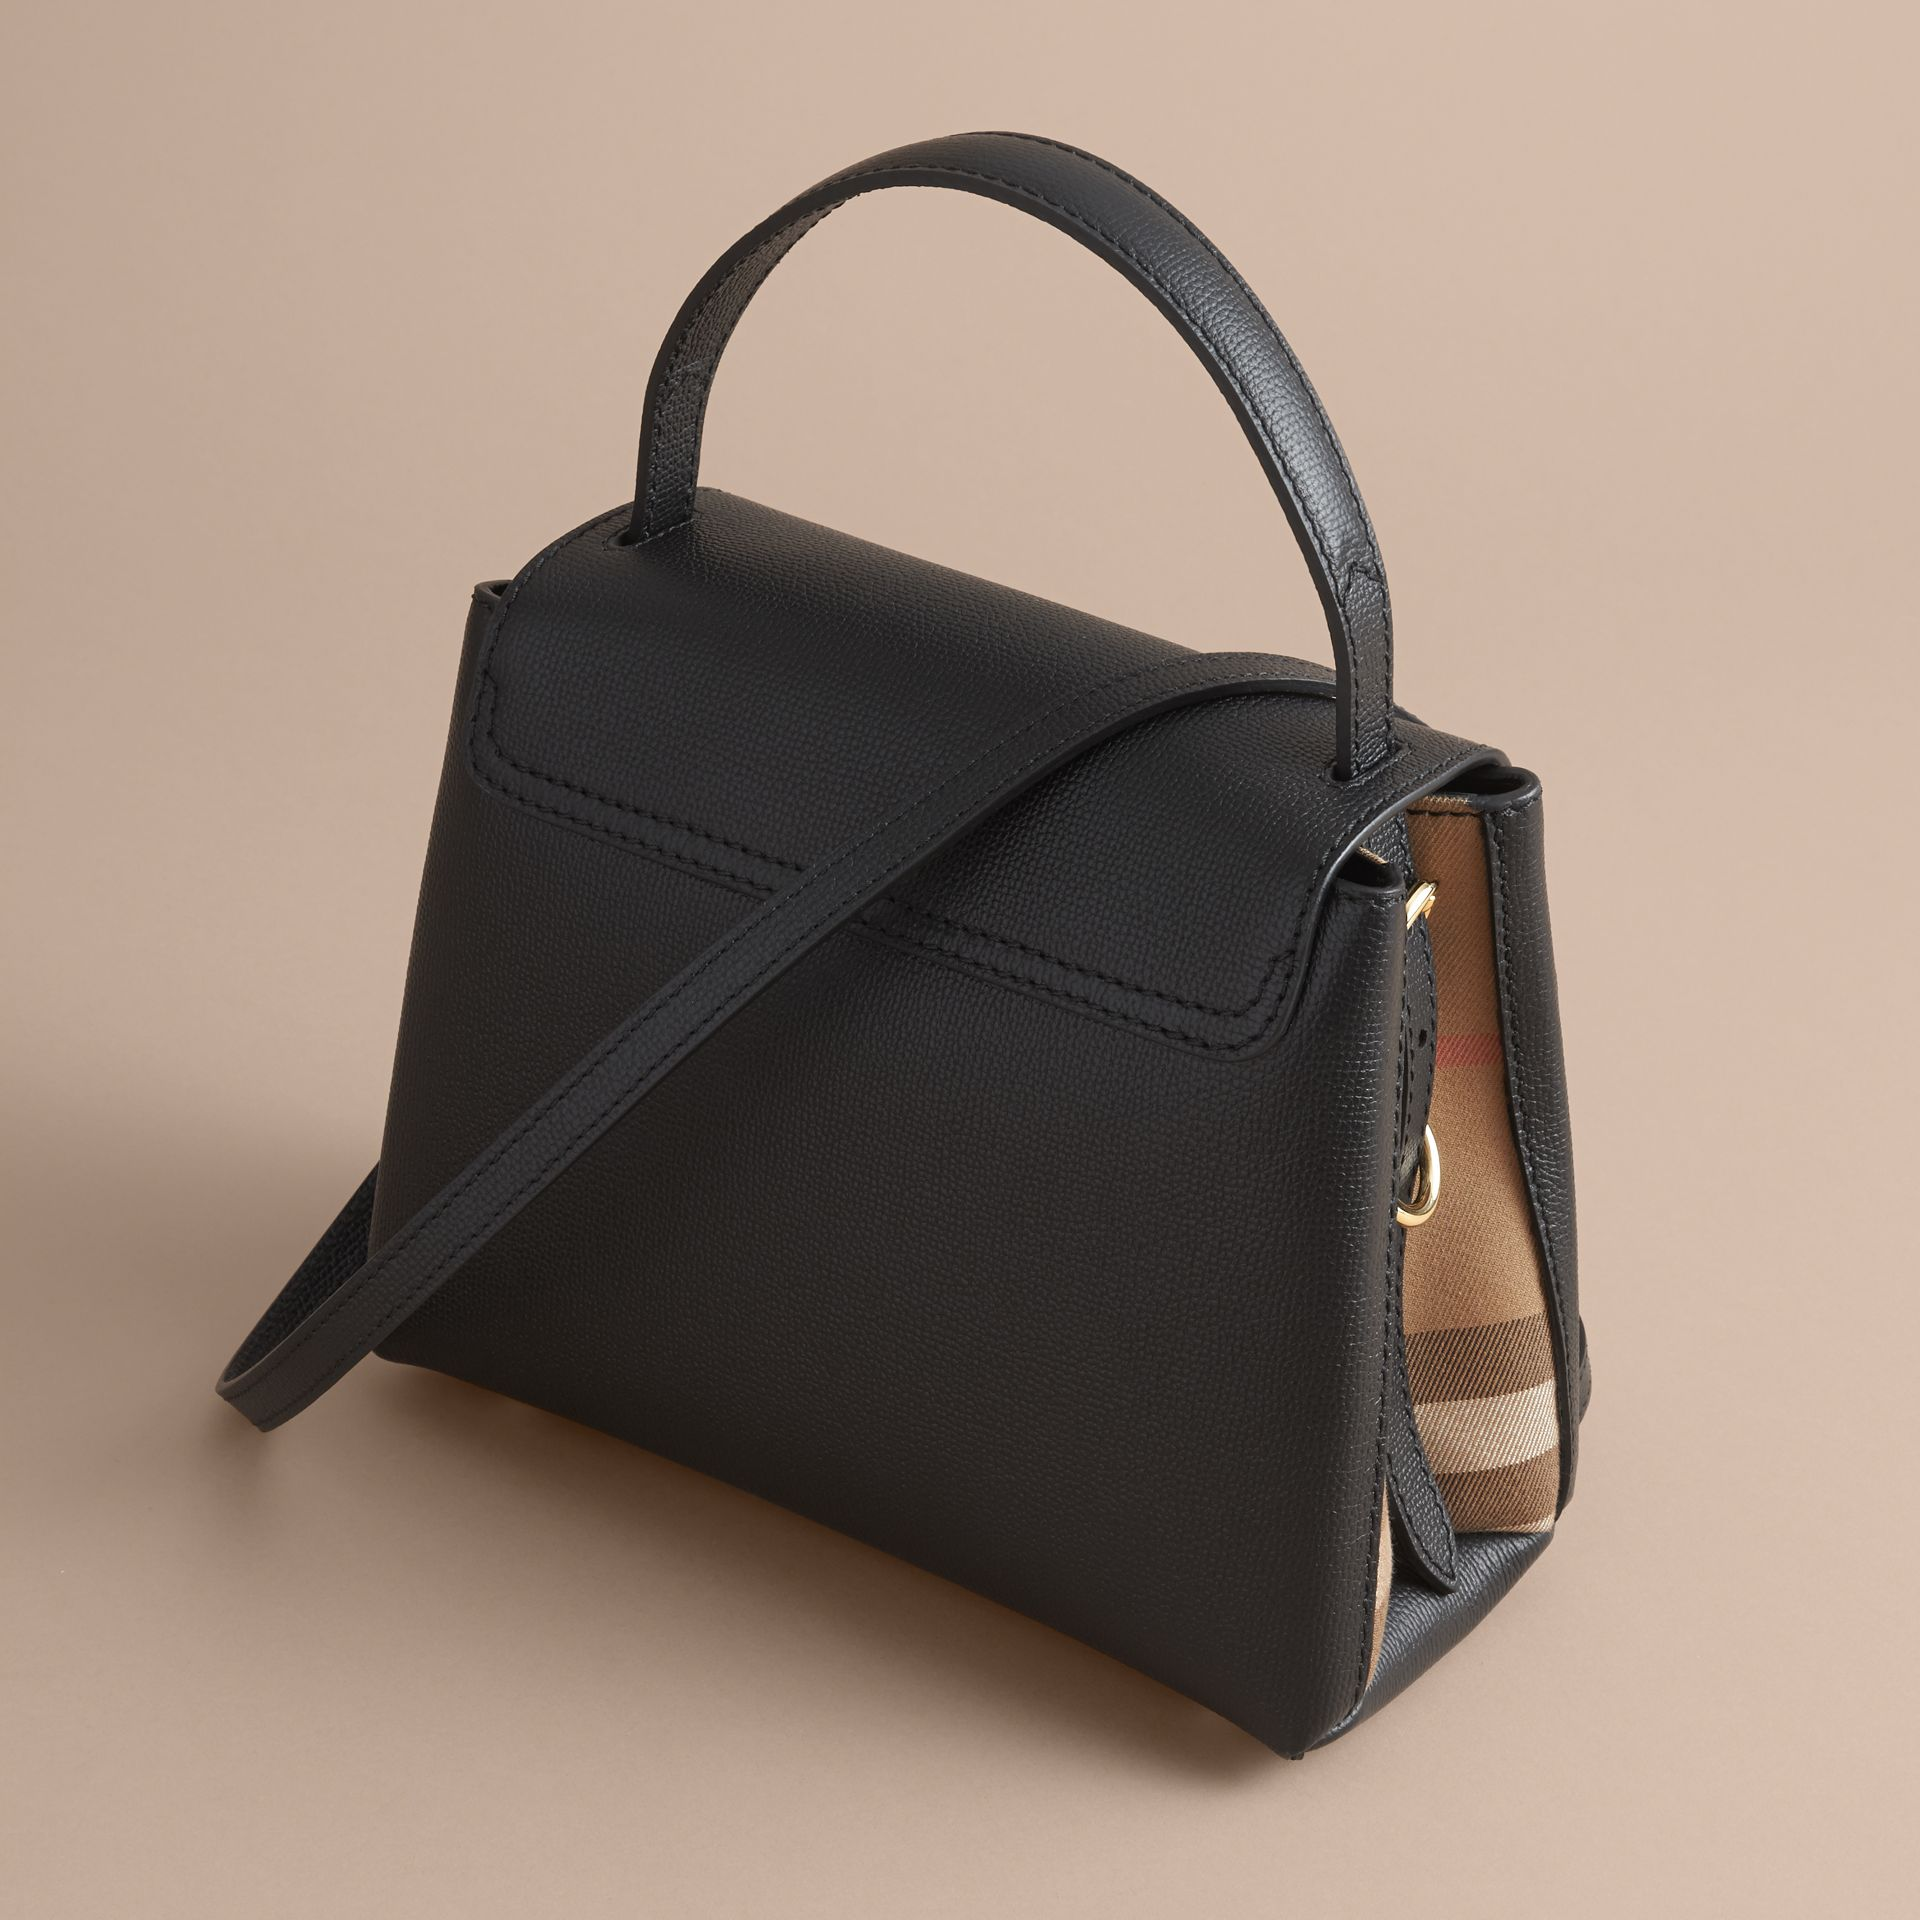 Small Grainy Leather and House Check Tote Bag in Black - Women | Burberry - gallery image 5